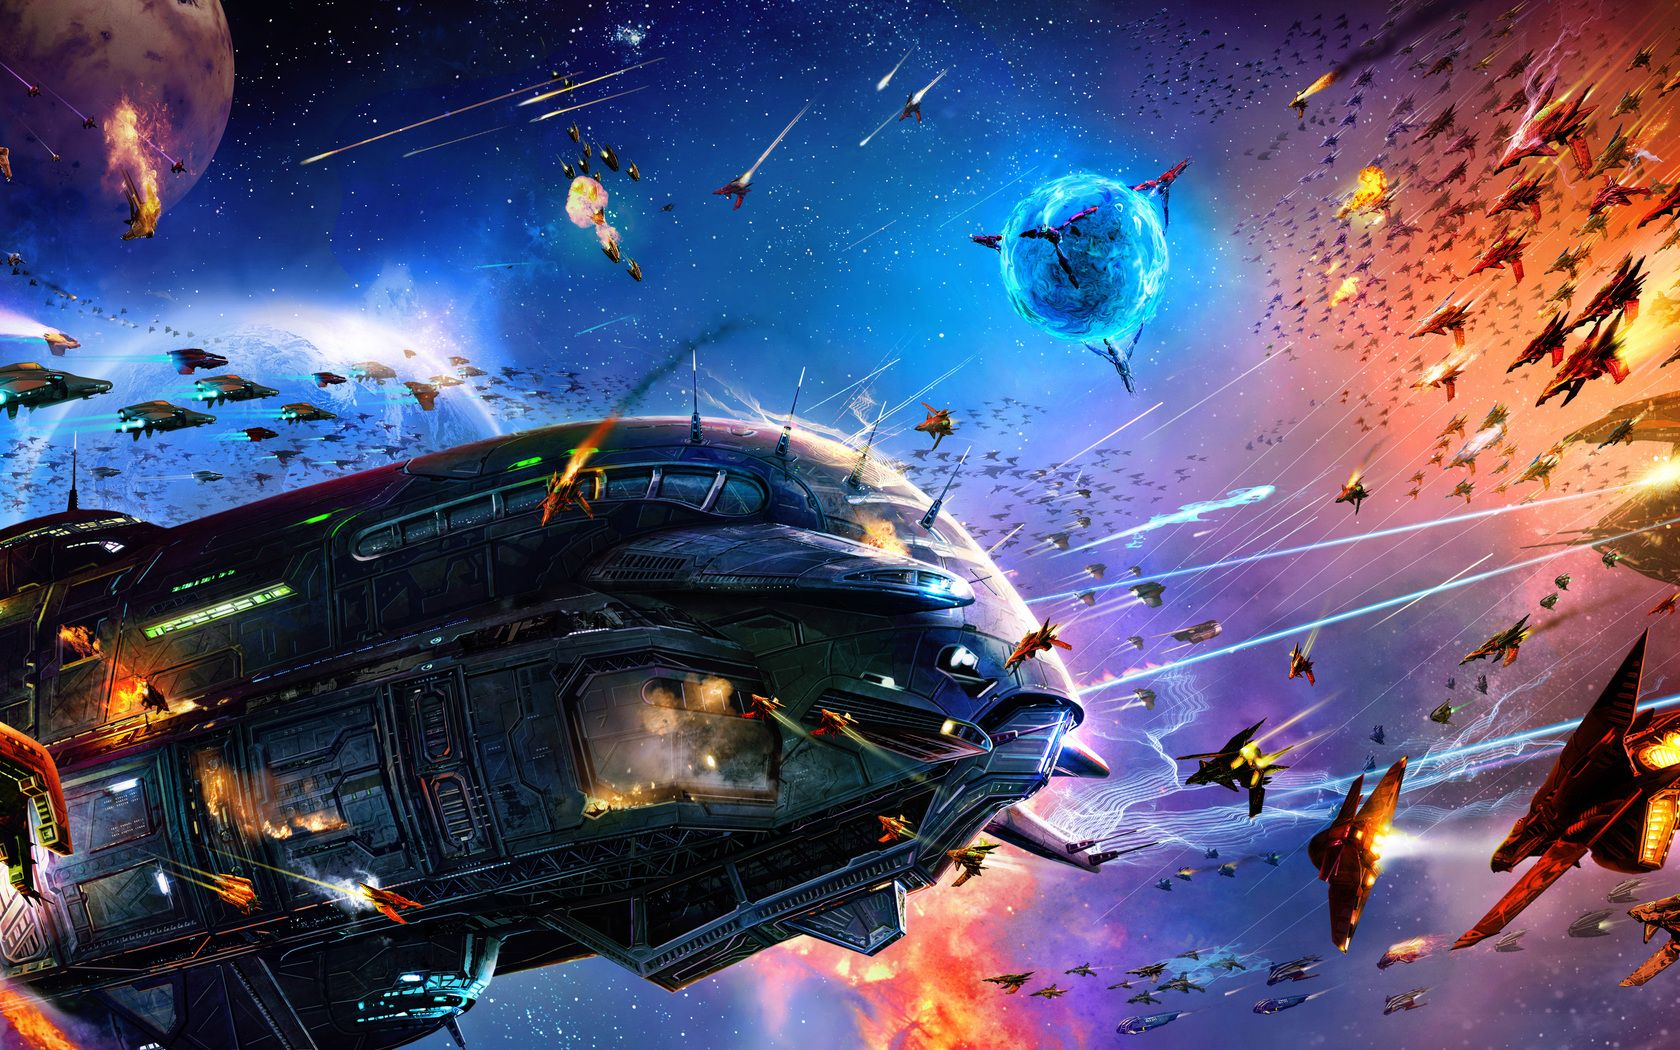 Space War Wallpapers Top Free Space War Backgrounds Wallpaperaccess